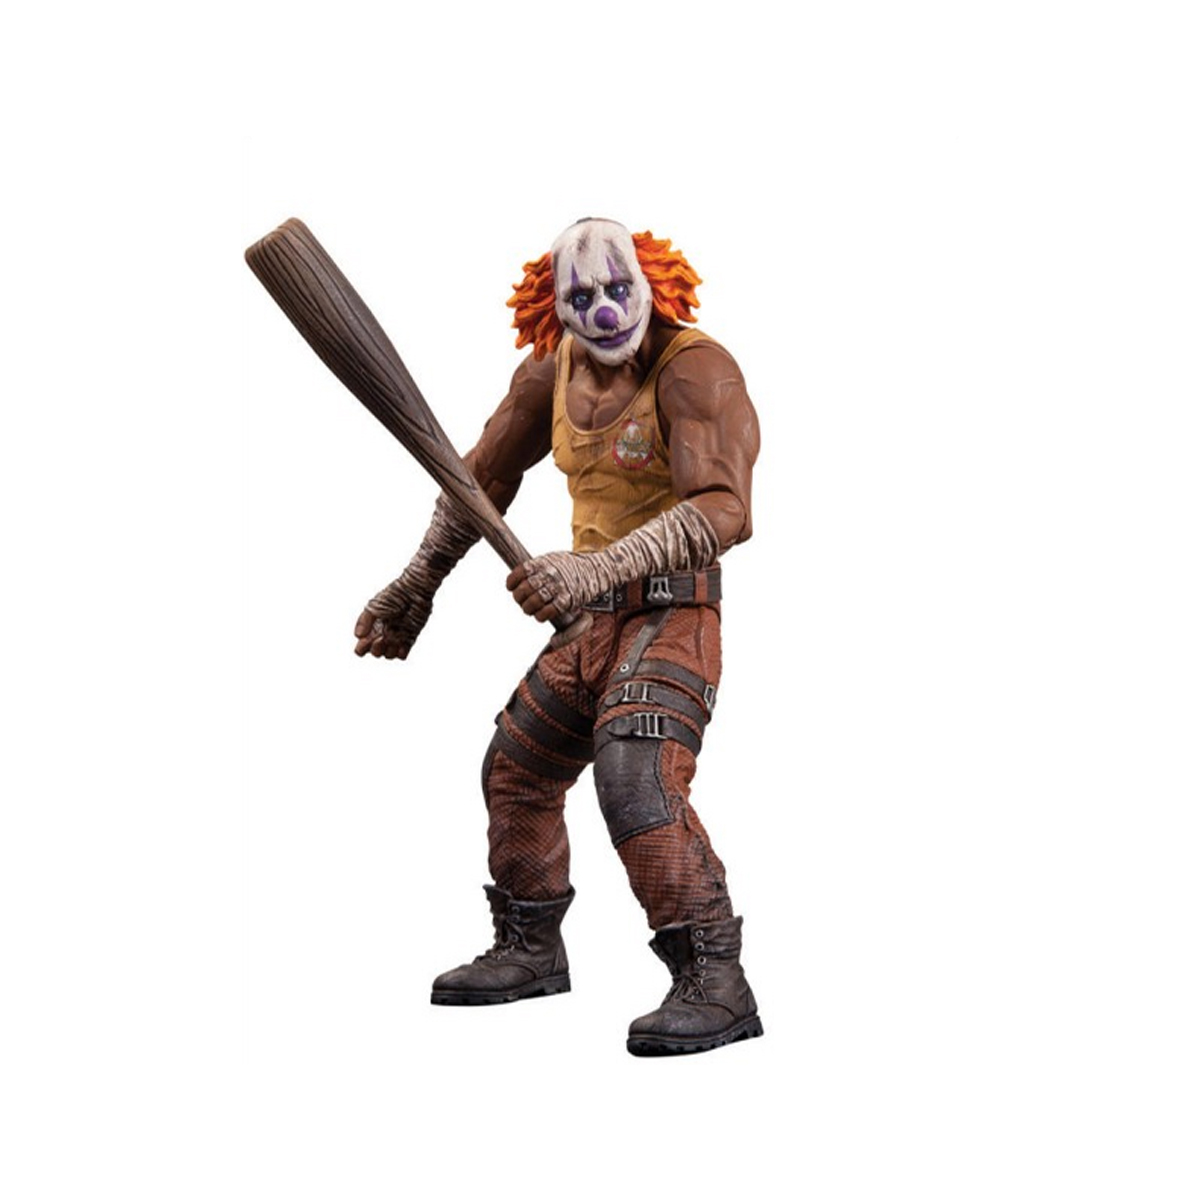 Boneco (Action Figure) Clown Thug 1 Series 3